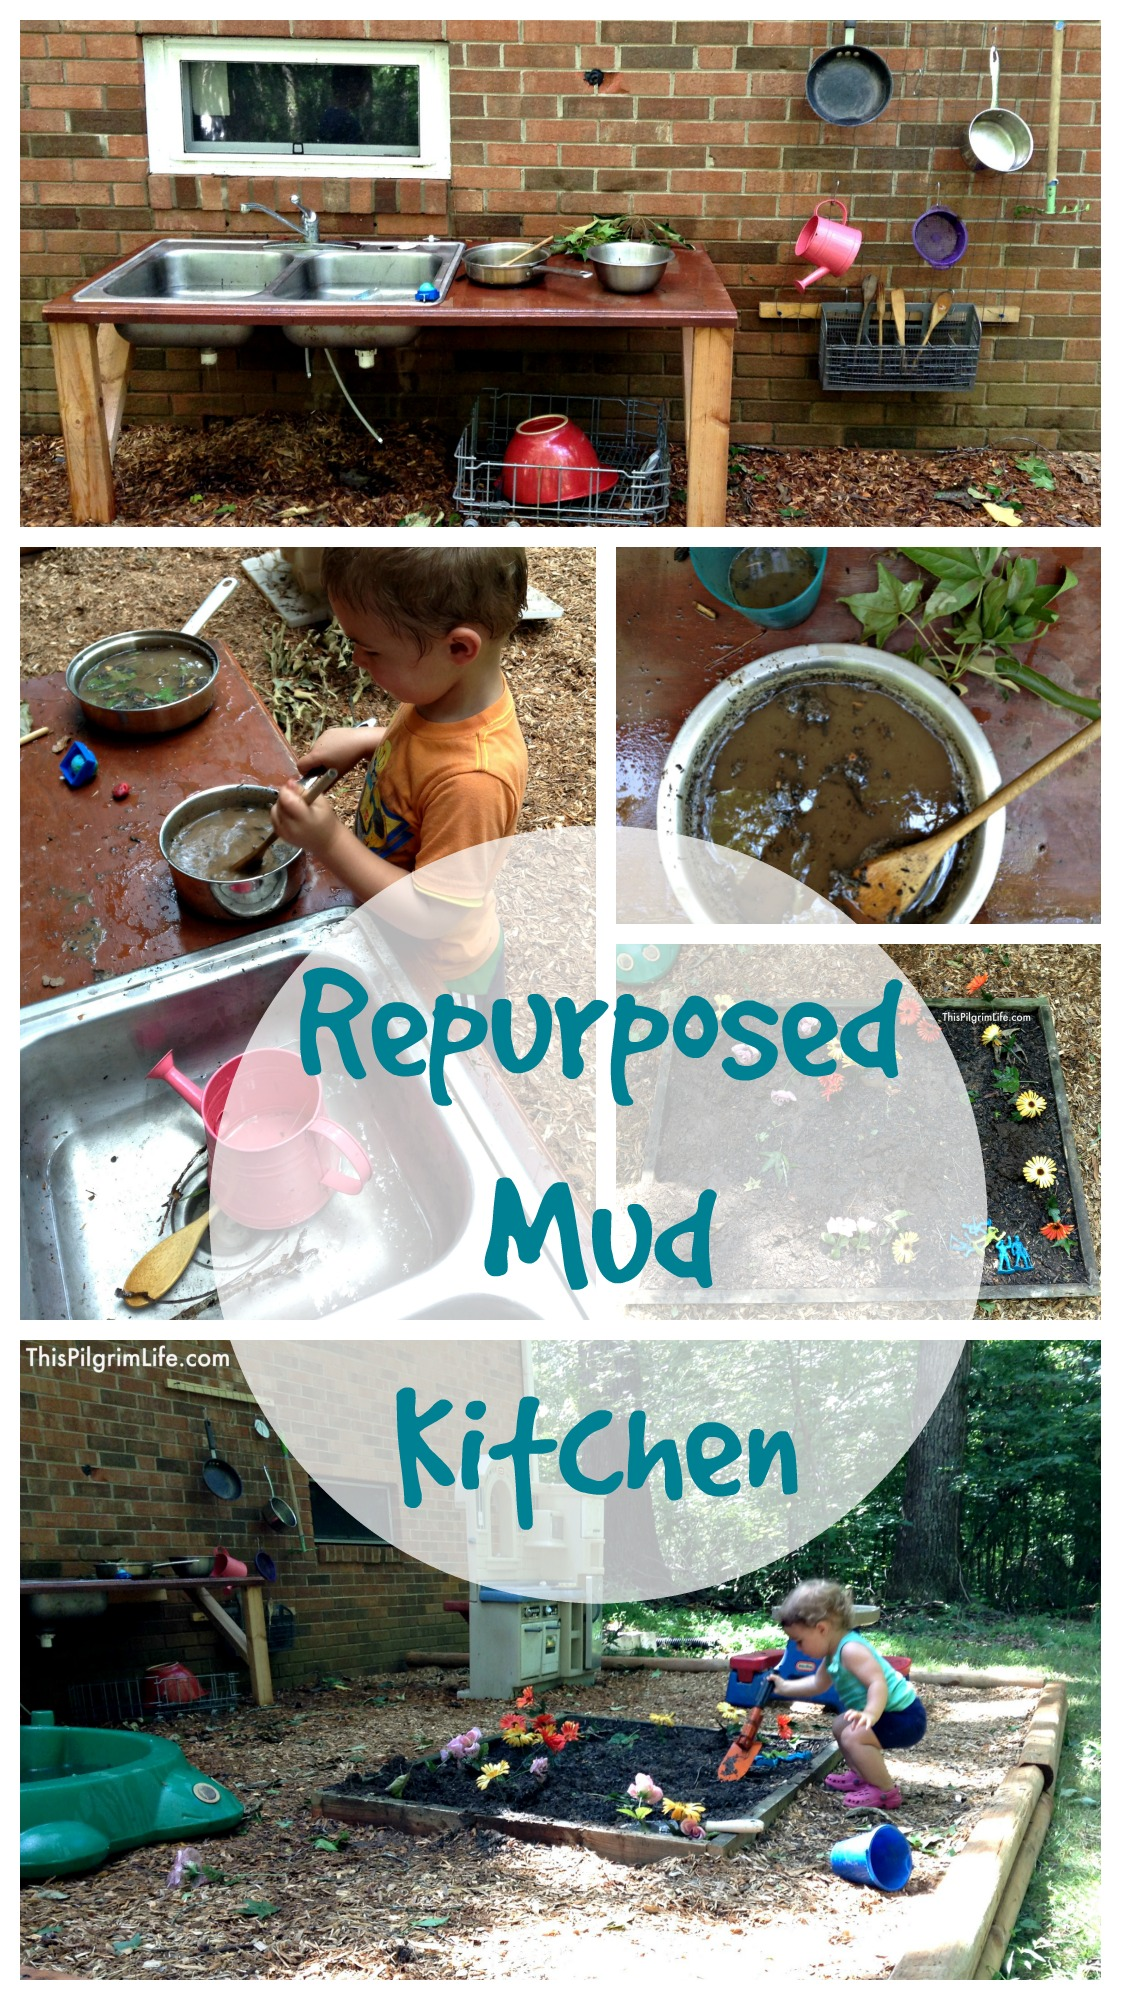 An awesome outdoor mud kitchen made with repurposed items from around the yard and house. Our new favorite backyard hangout!